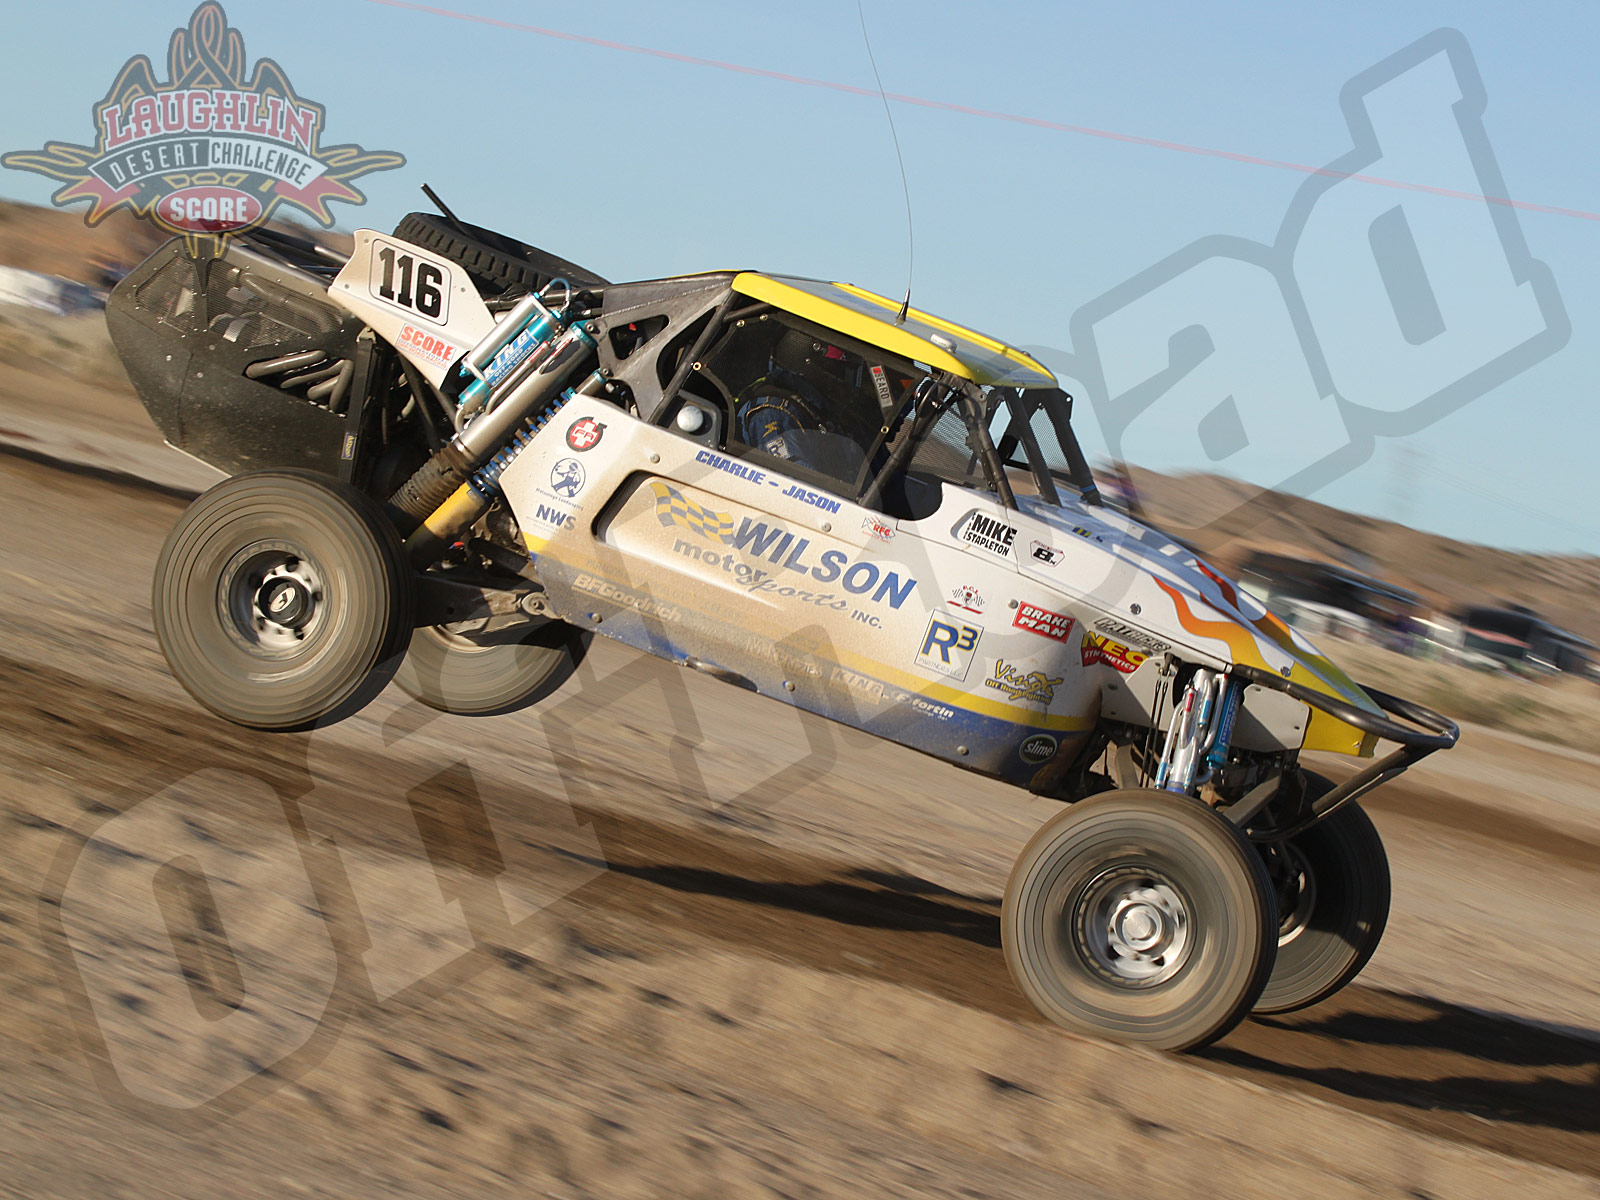 030811or 6450+2011 score laughlin desert challenge+class 1 saturday